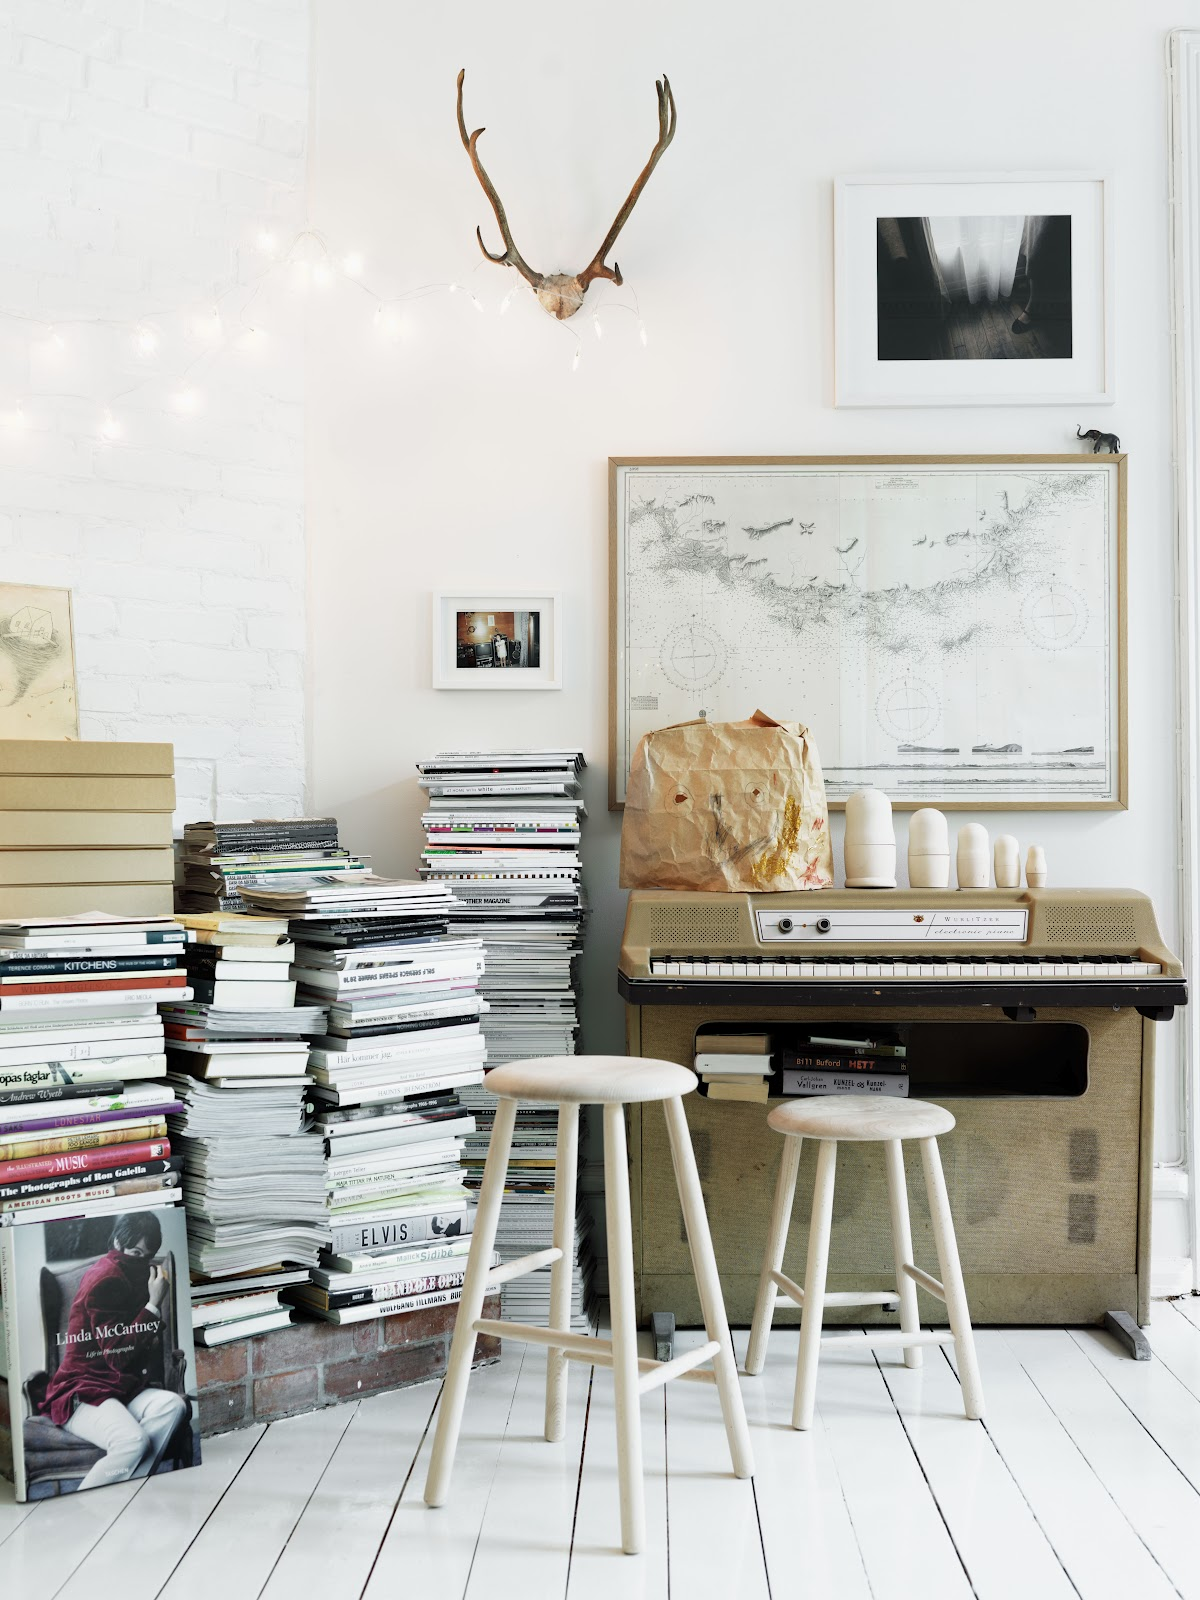 Home of interior stylist Emma Persson Lagerberg photographed by Petra Bindel